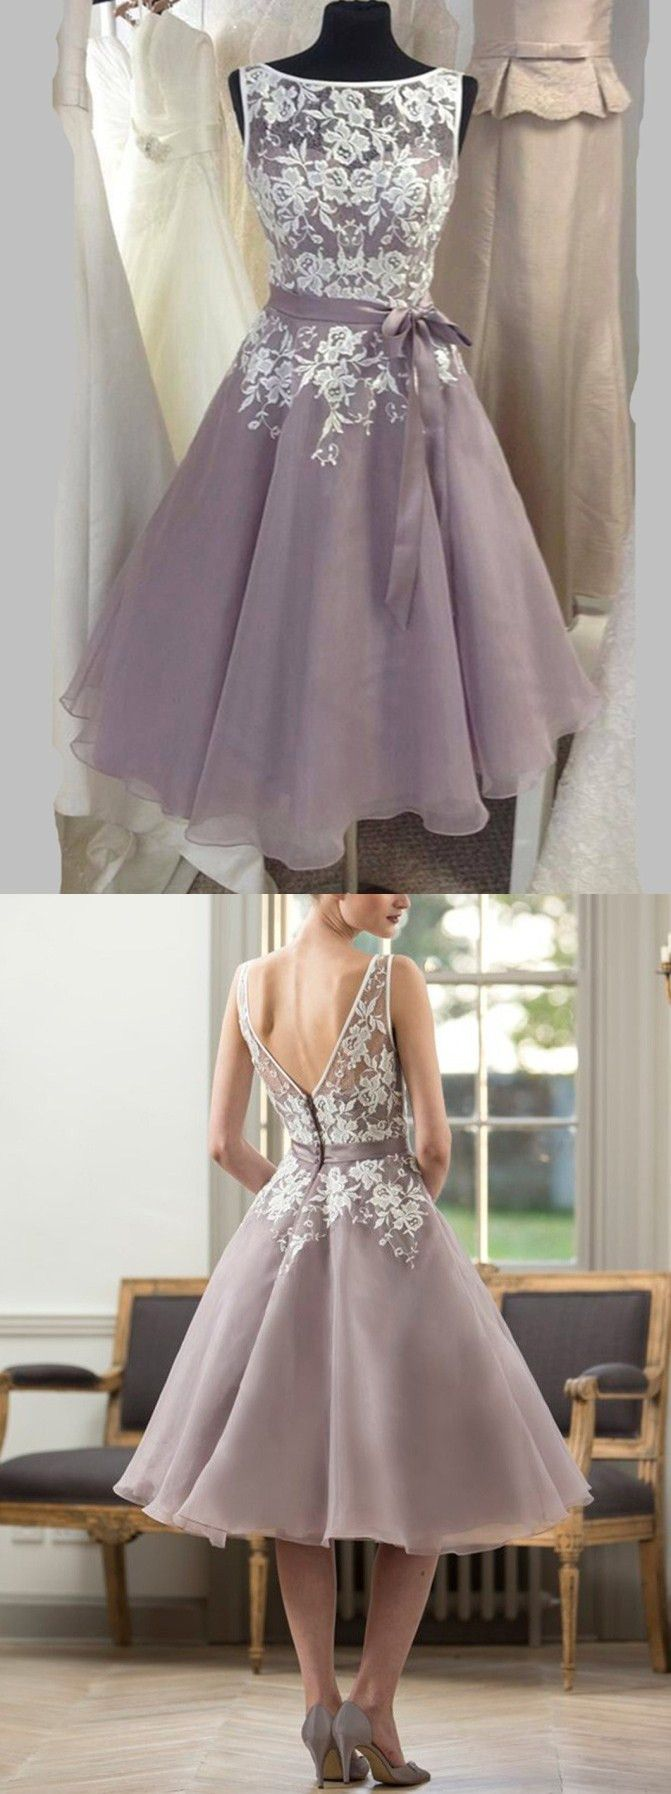 bridesmaid dresses, grey party dresses, cheap homecoming dresses with appliques.